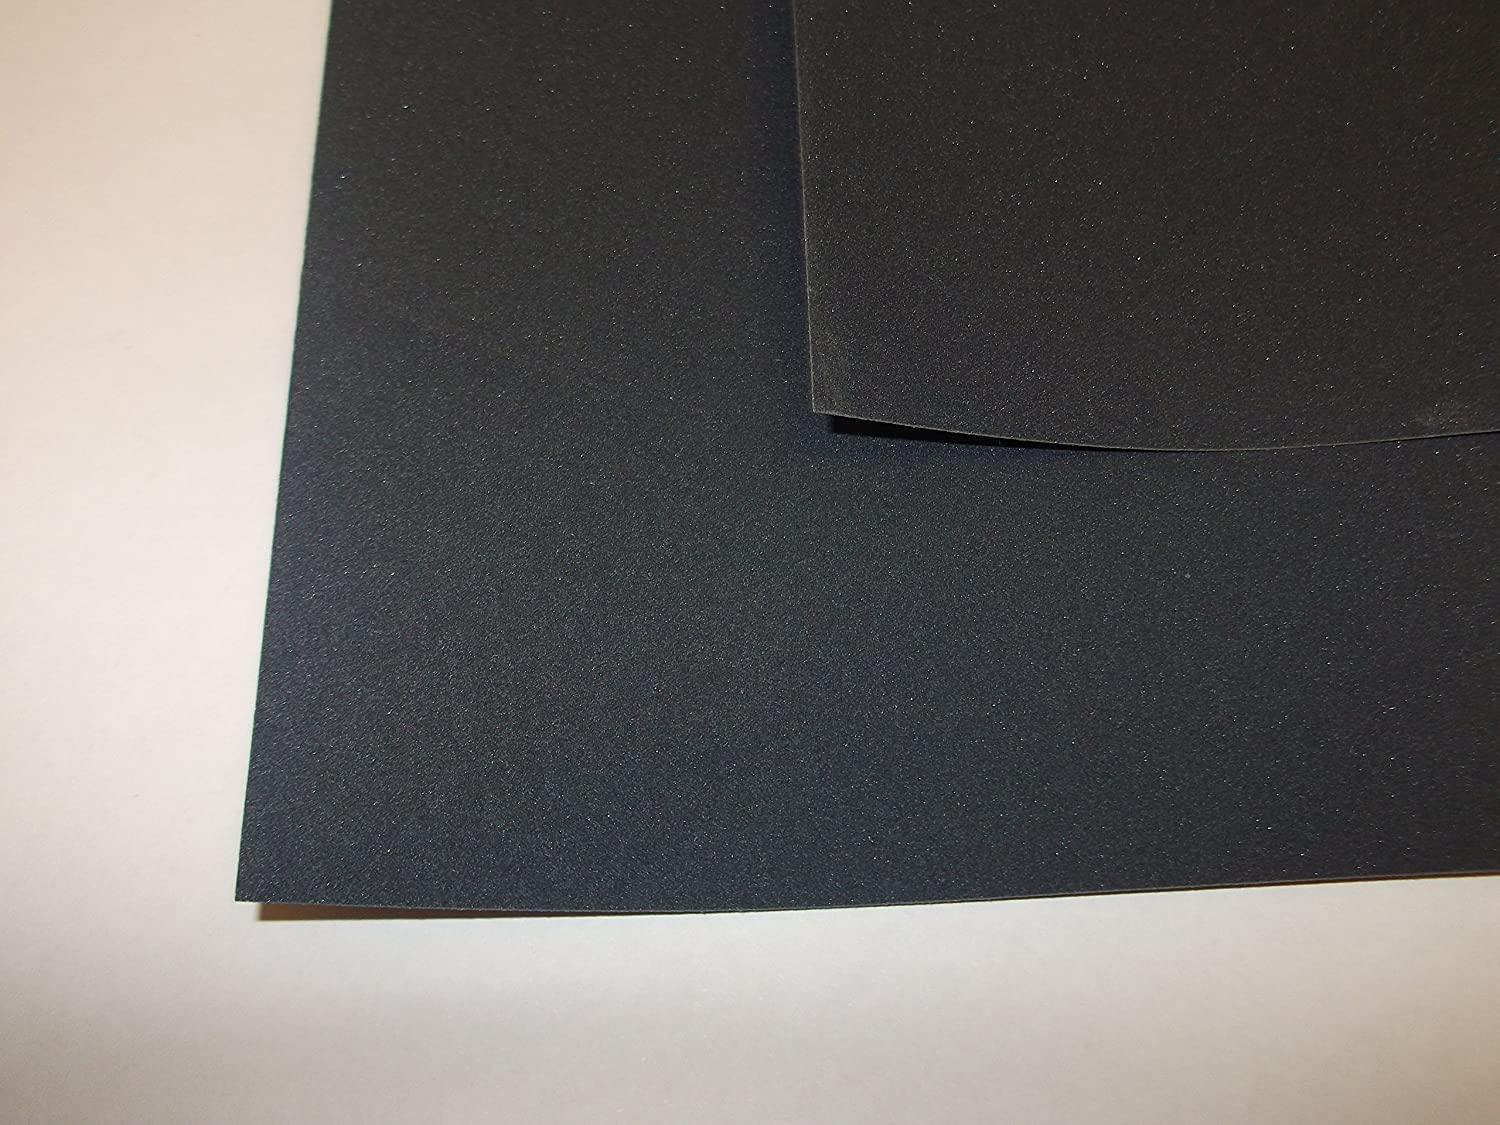 4 x Grit 300 Medium Wet /& Dry Sandpaper Emery Paper Sheets A4 Size 280mm x 230mm